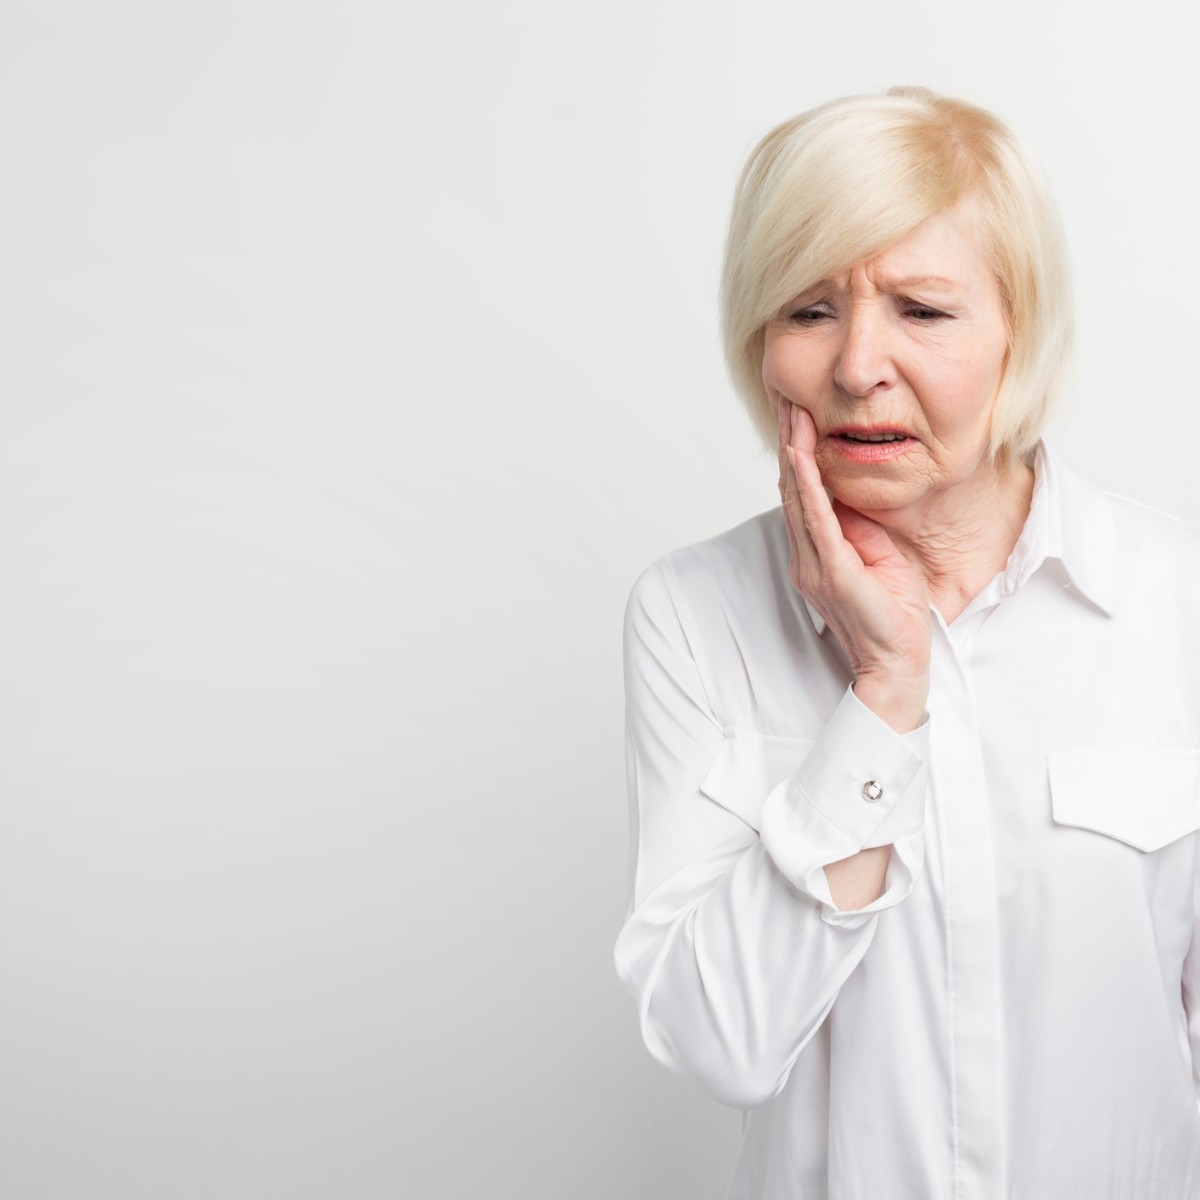 Remedies For Pain From Wearing Dentures